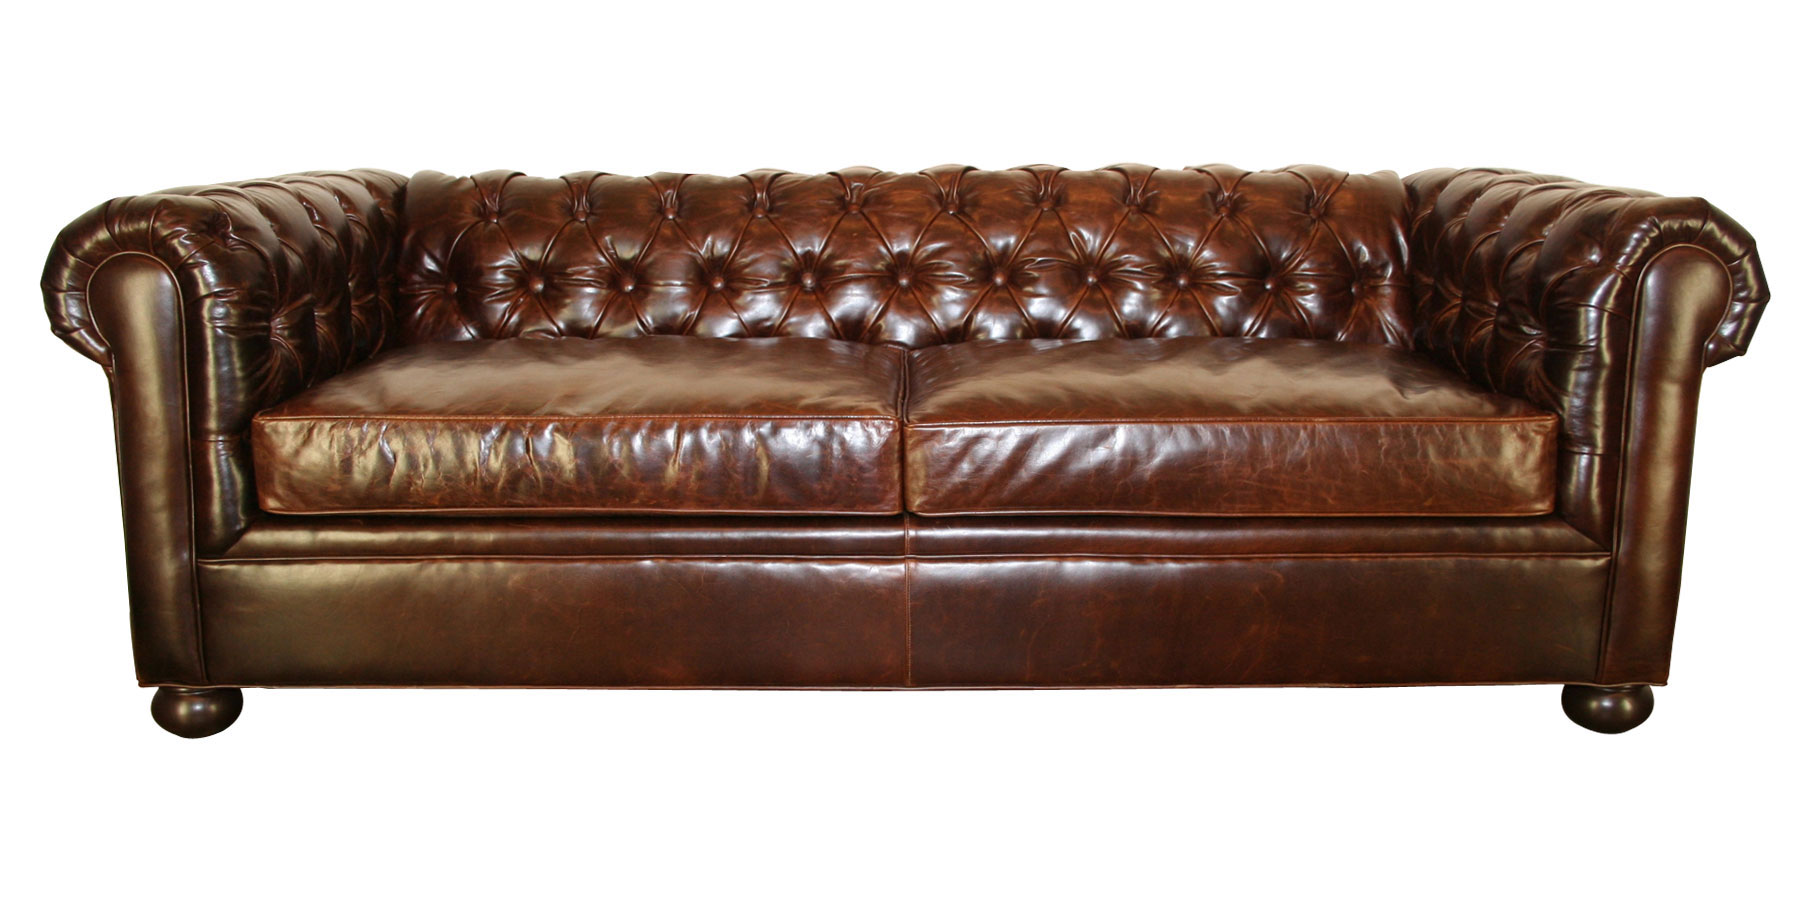 Tufted Leather Chesterfield Living Room Furniture Club